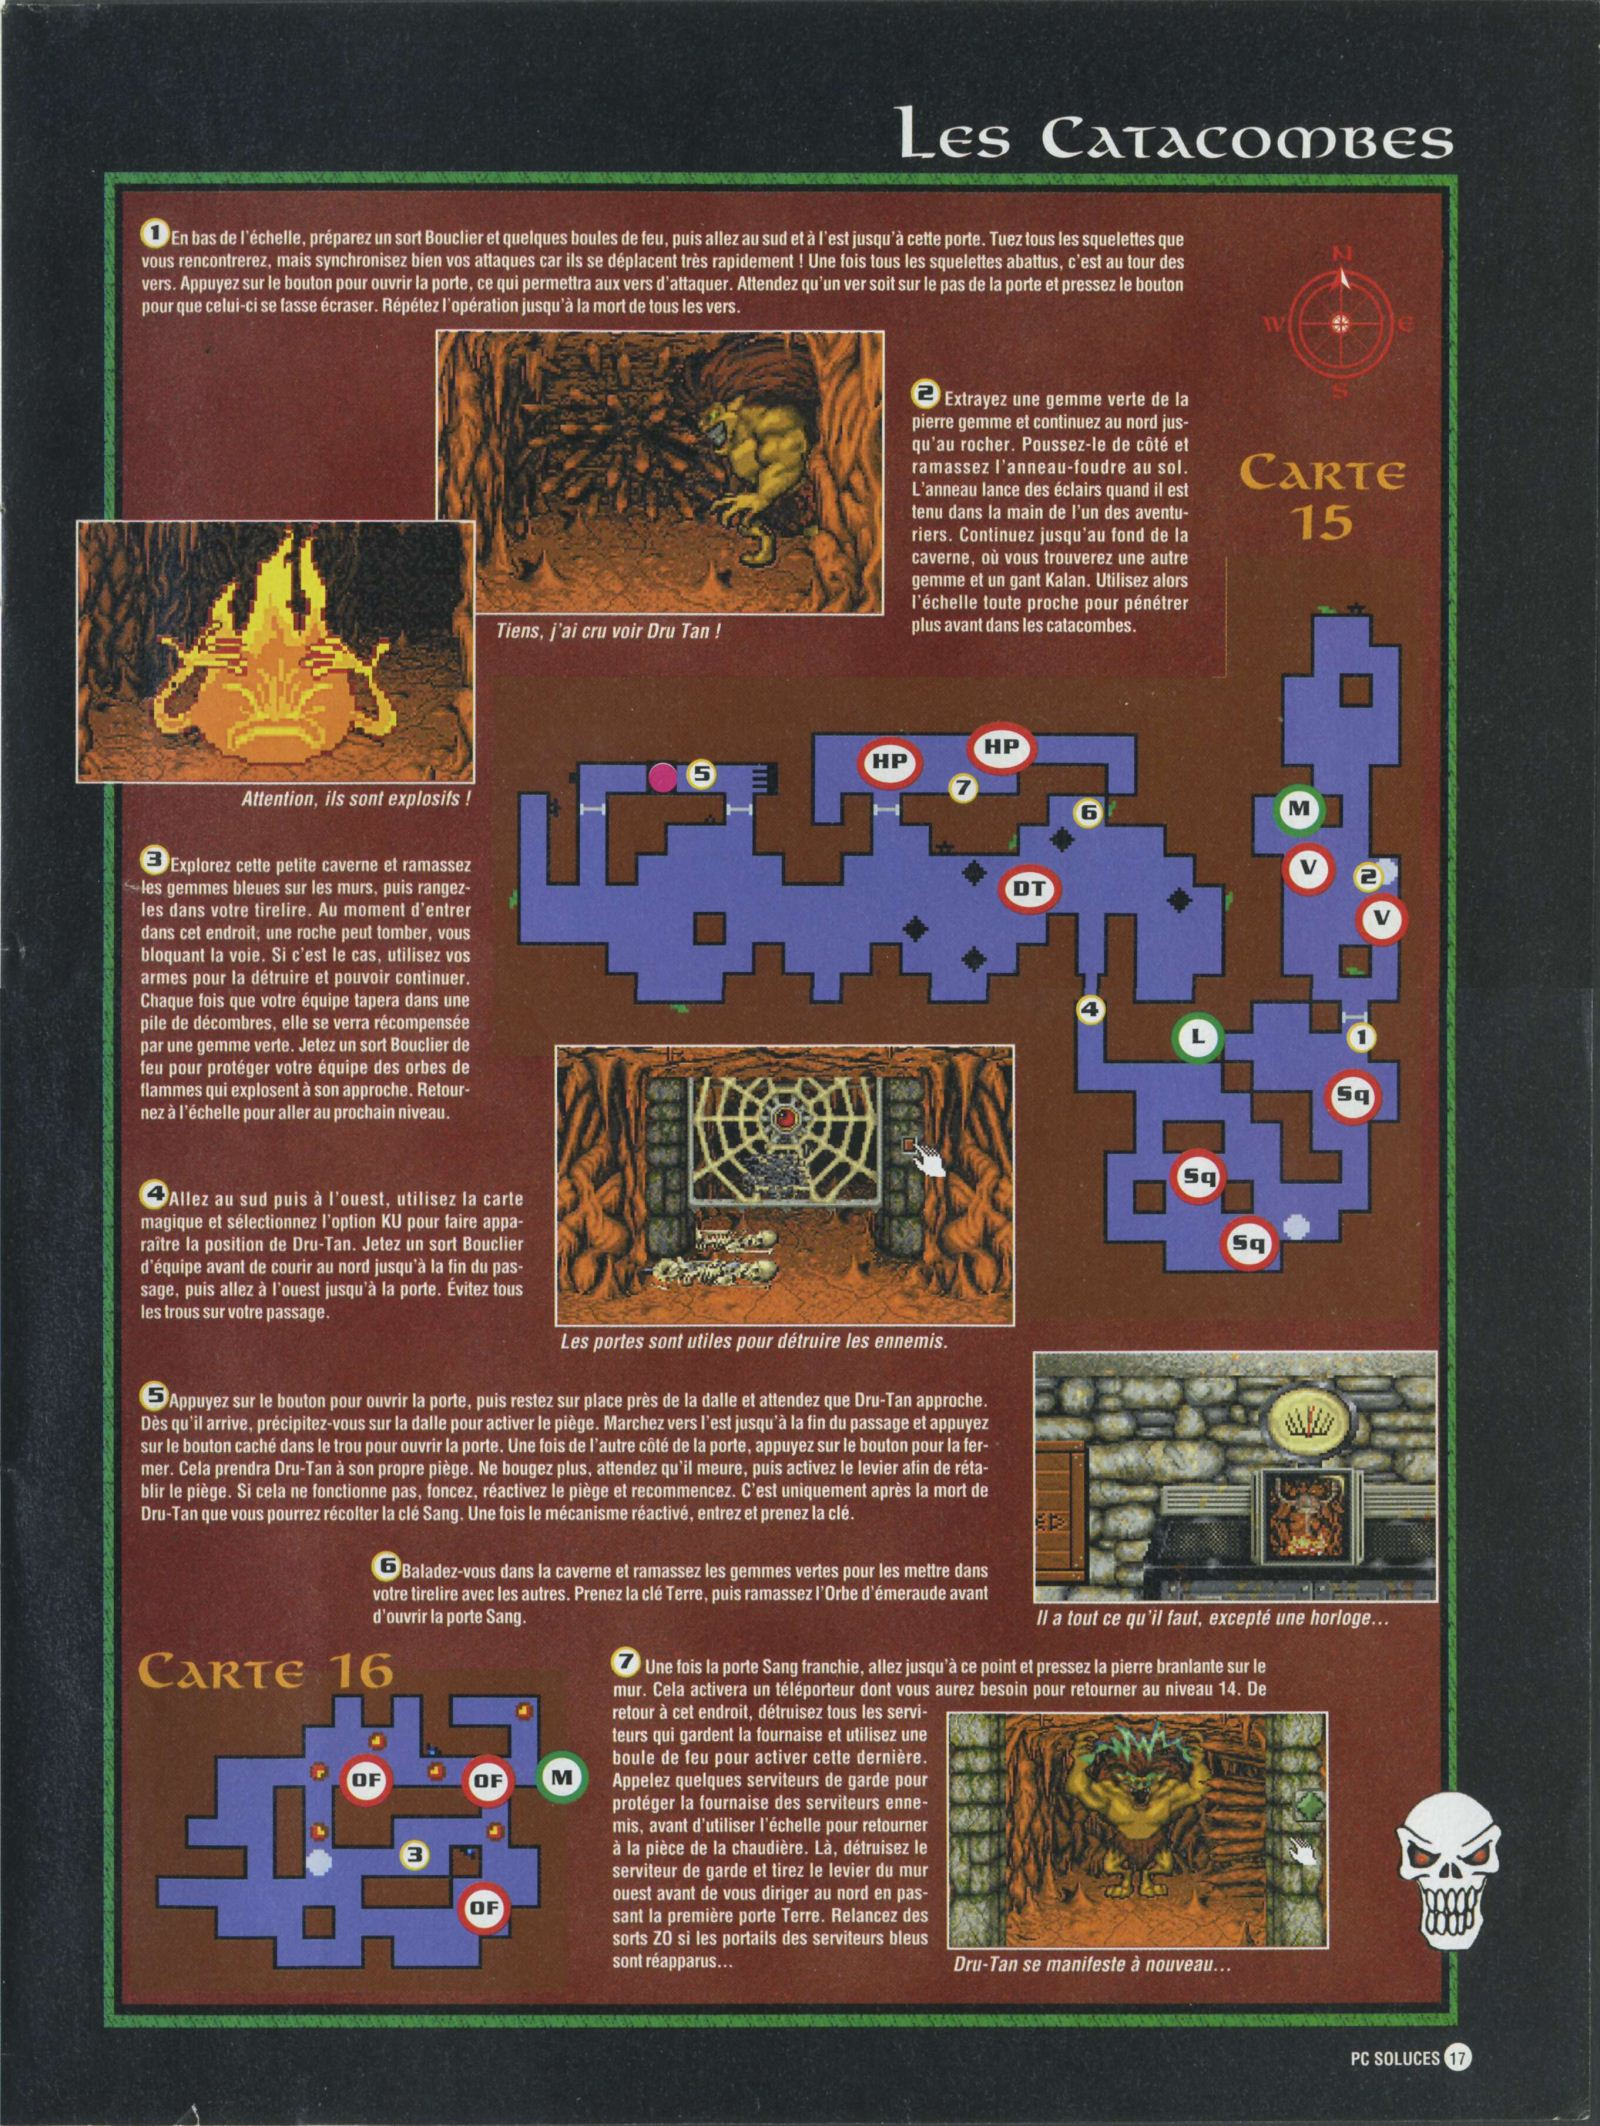 Dungeon Master II solution published in French magazine &amp;#039;PC Soluces&amp;#039;, Issue#1, February-March 1996, Page17